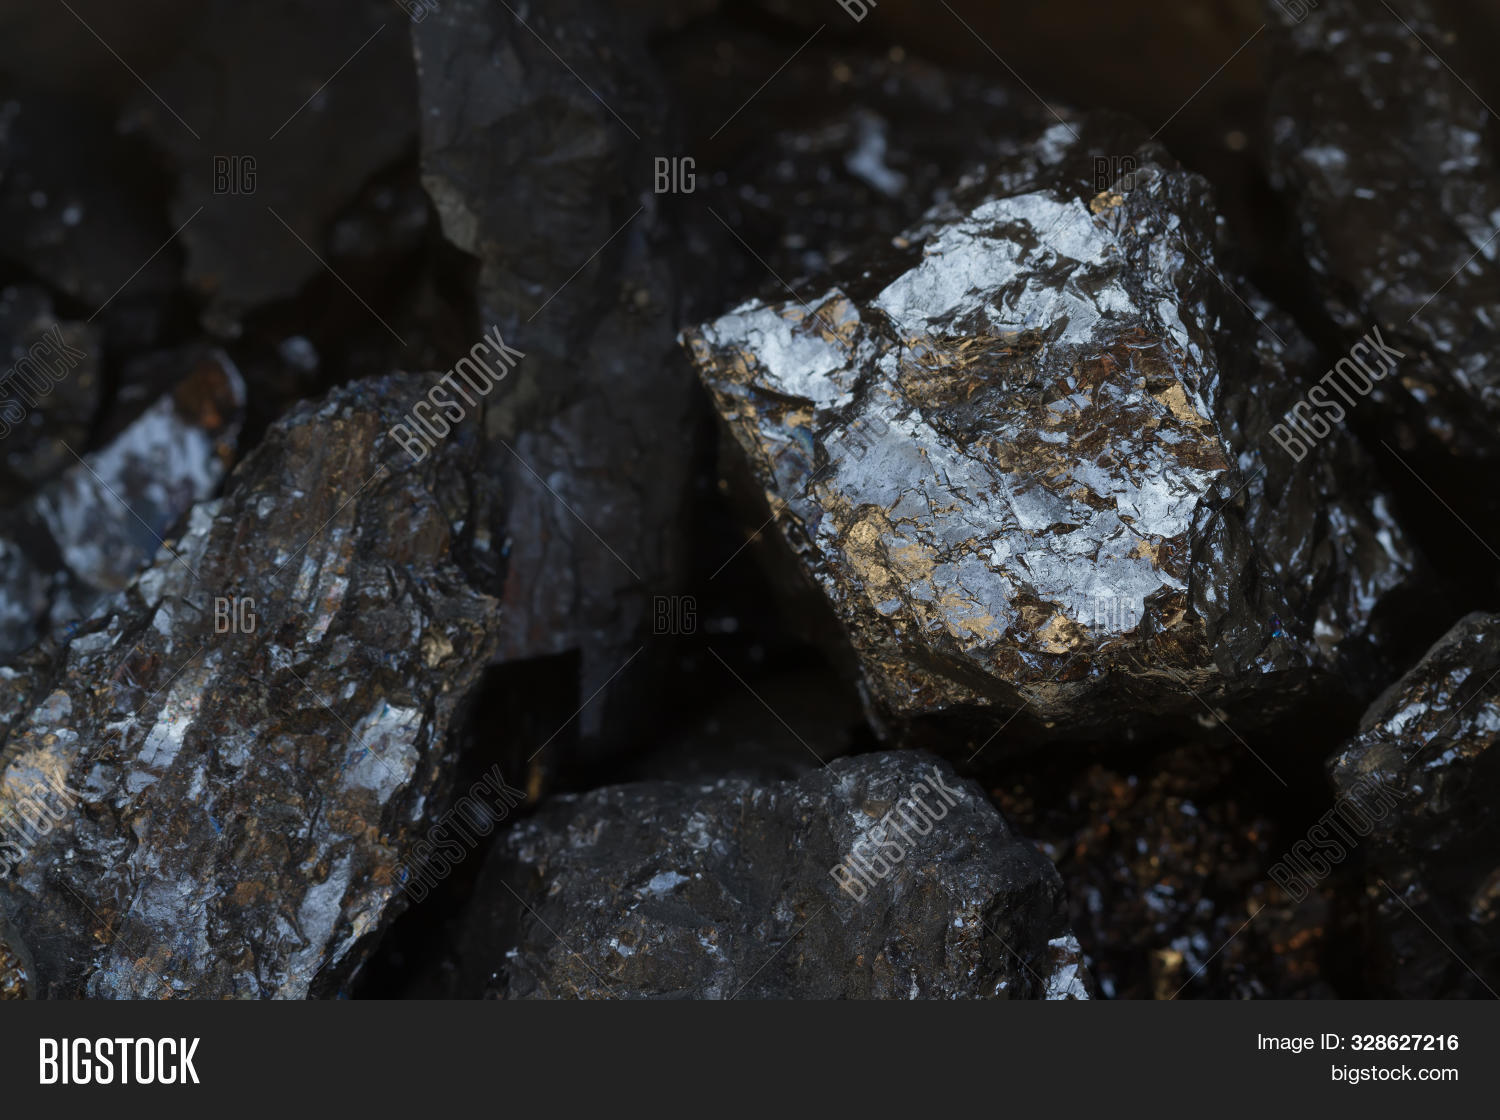 abstract,anthracite,background,bar,black,blaze,blazing,burning,calorific,campfire,carbon,close-up,closeup,coal,design,ember,energy,exploding,fire,flame,focus,fossil,frame,fuel,full,group,heap,heat,horizontal,illuminated,industry,inferno,ingot,large,lignite,macro,mine,mineral,nugget,objects,old,pattern,pile,power,rock,smoke,space,stack,stone,texture